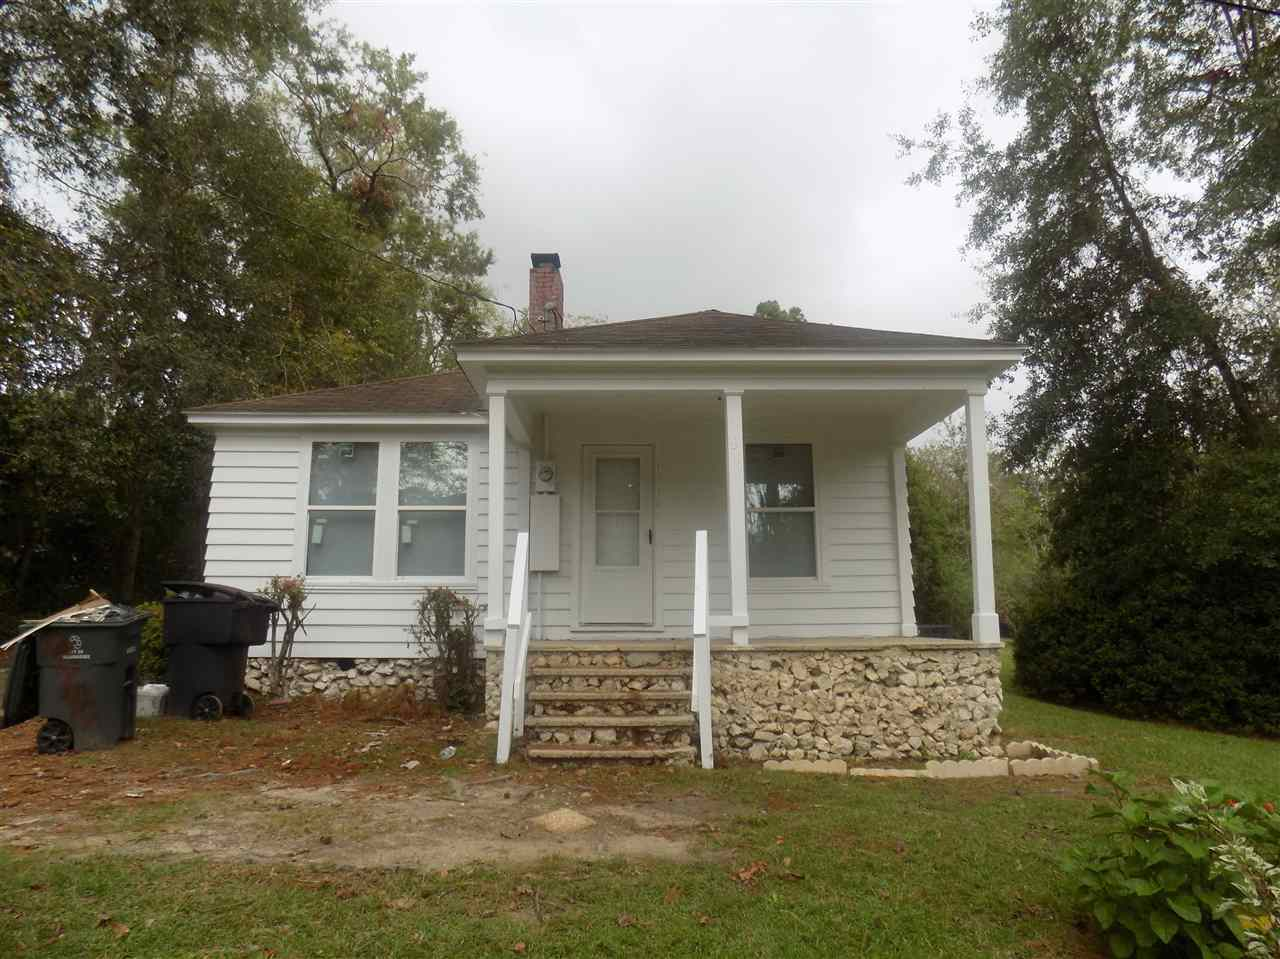 $925 - 3Br/1Ba -  for Sale in Na, Tallahassee